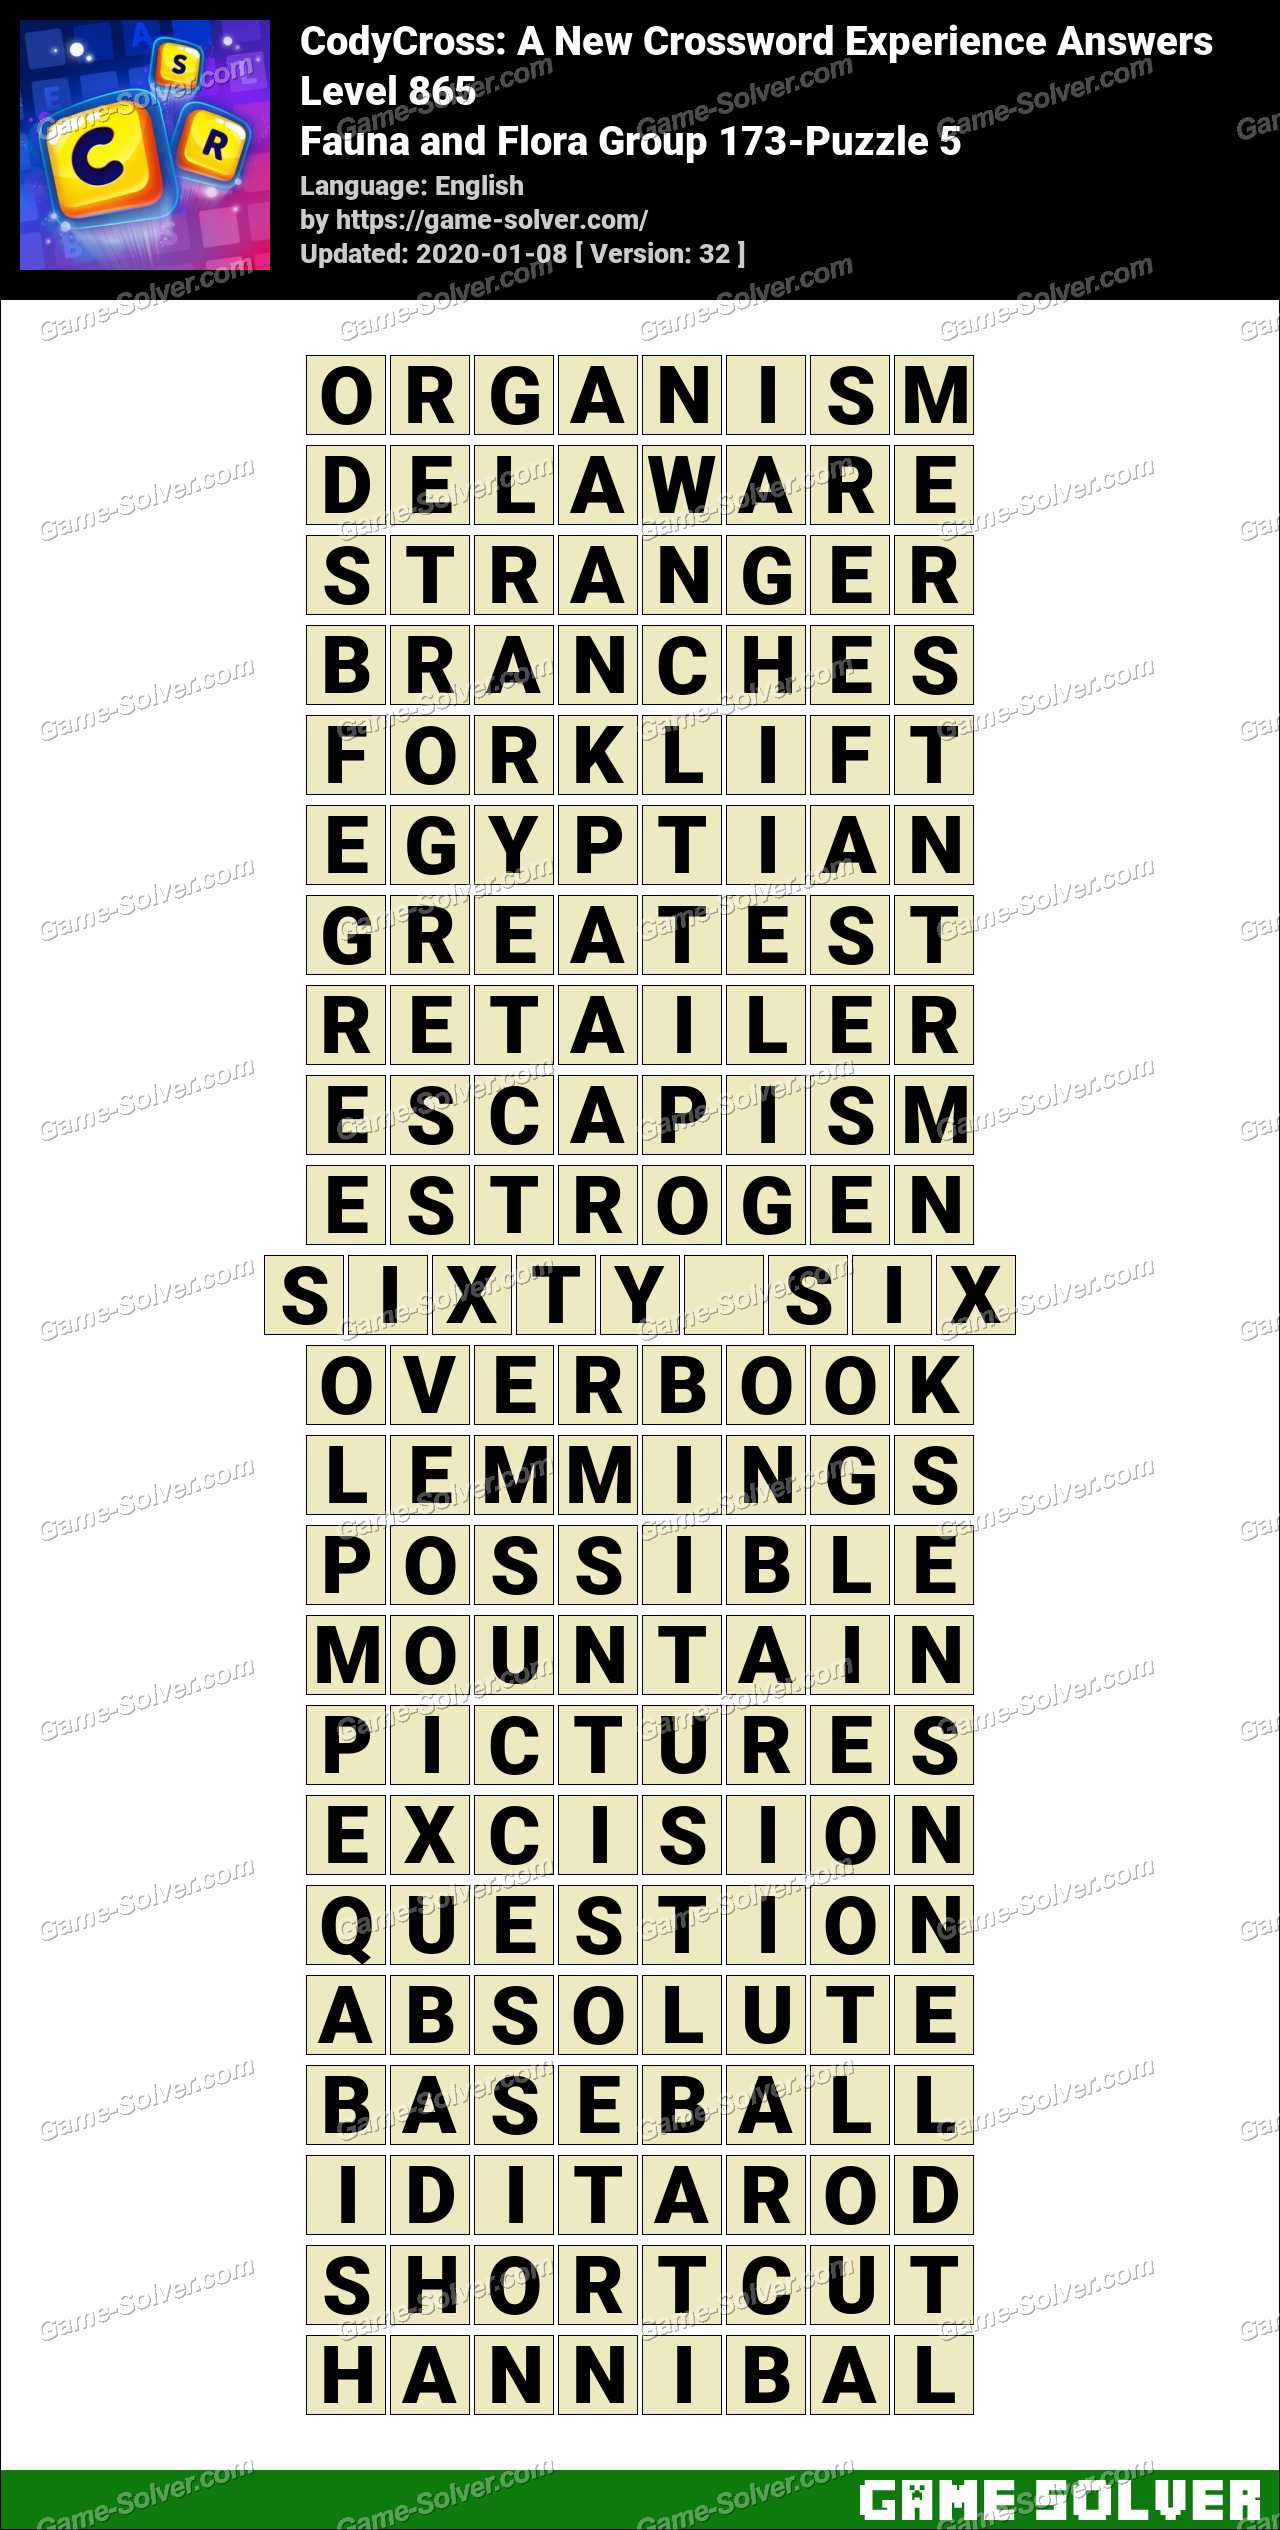 CodyCross Fauna and Flora Group 173-Puzzle 5 Answers